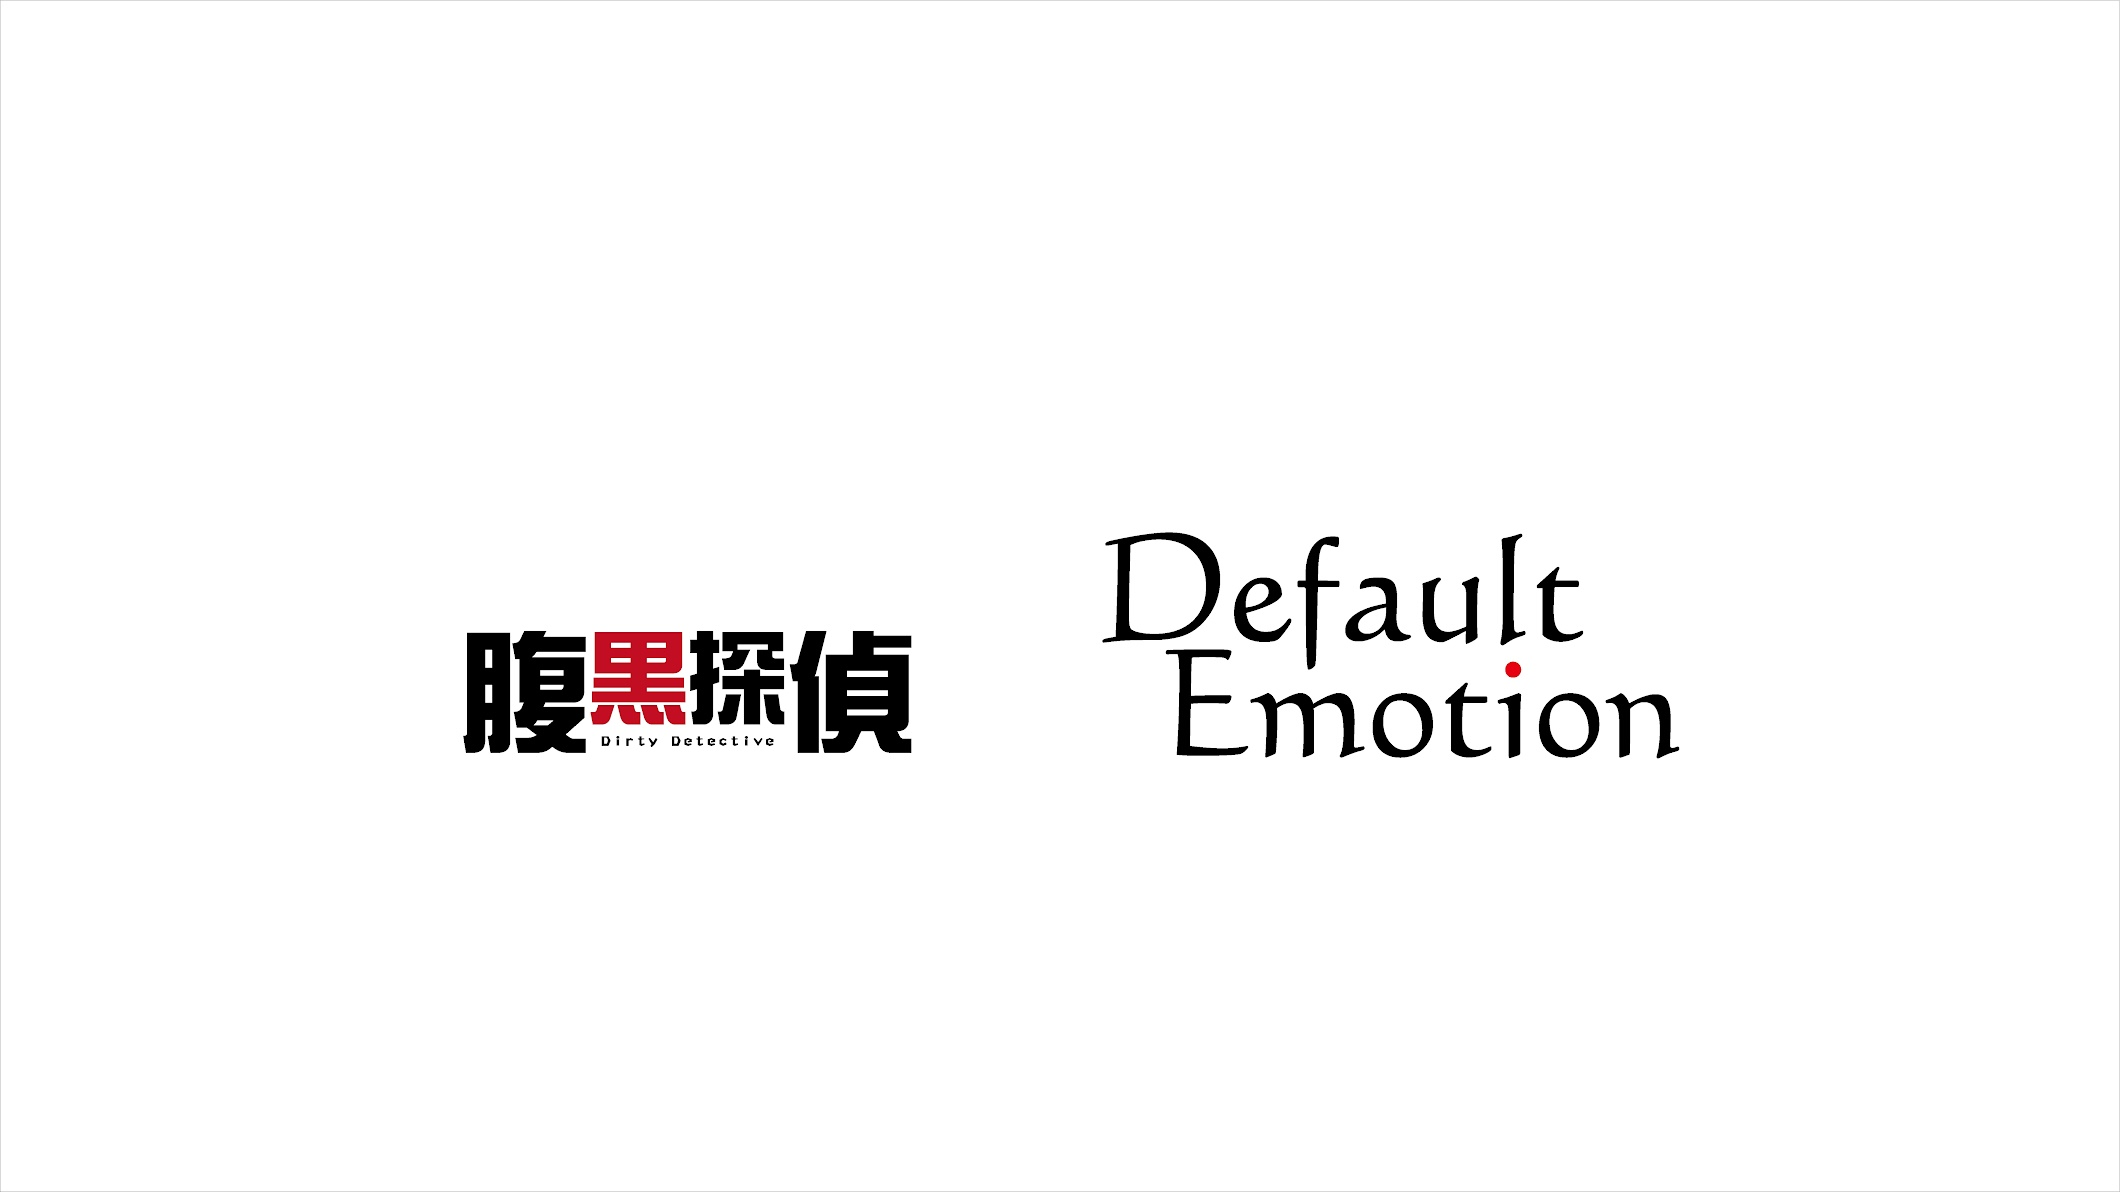 Default Emotion